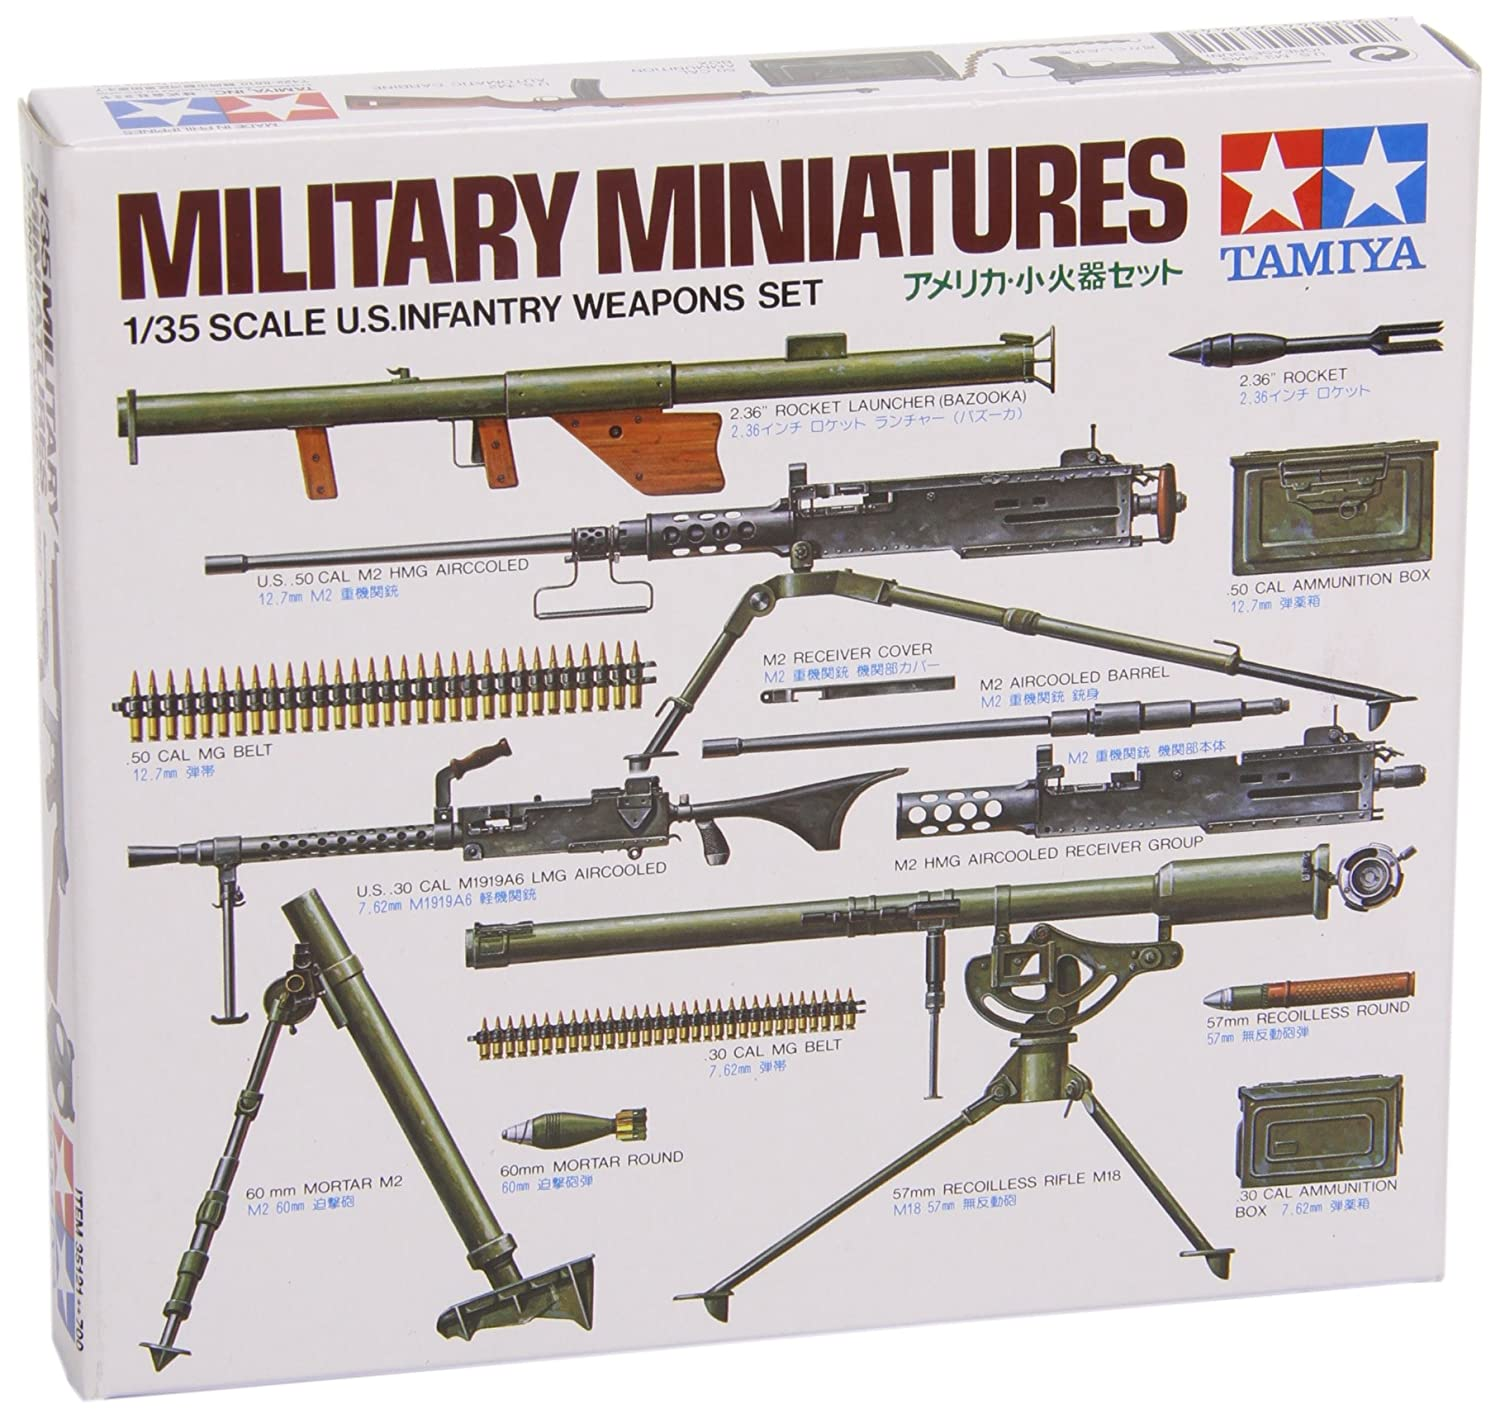 Military Minatures Us Infantry Weapons Set - 1:35 Scale Military - Tamiya